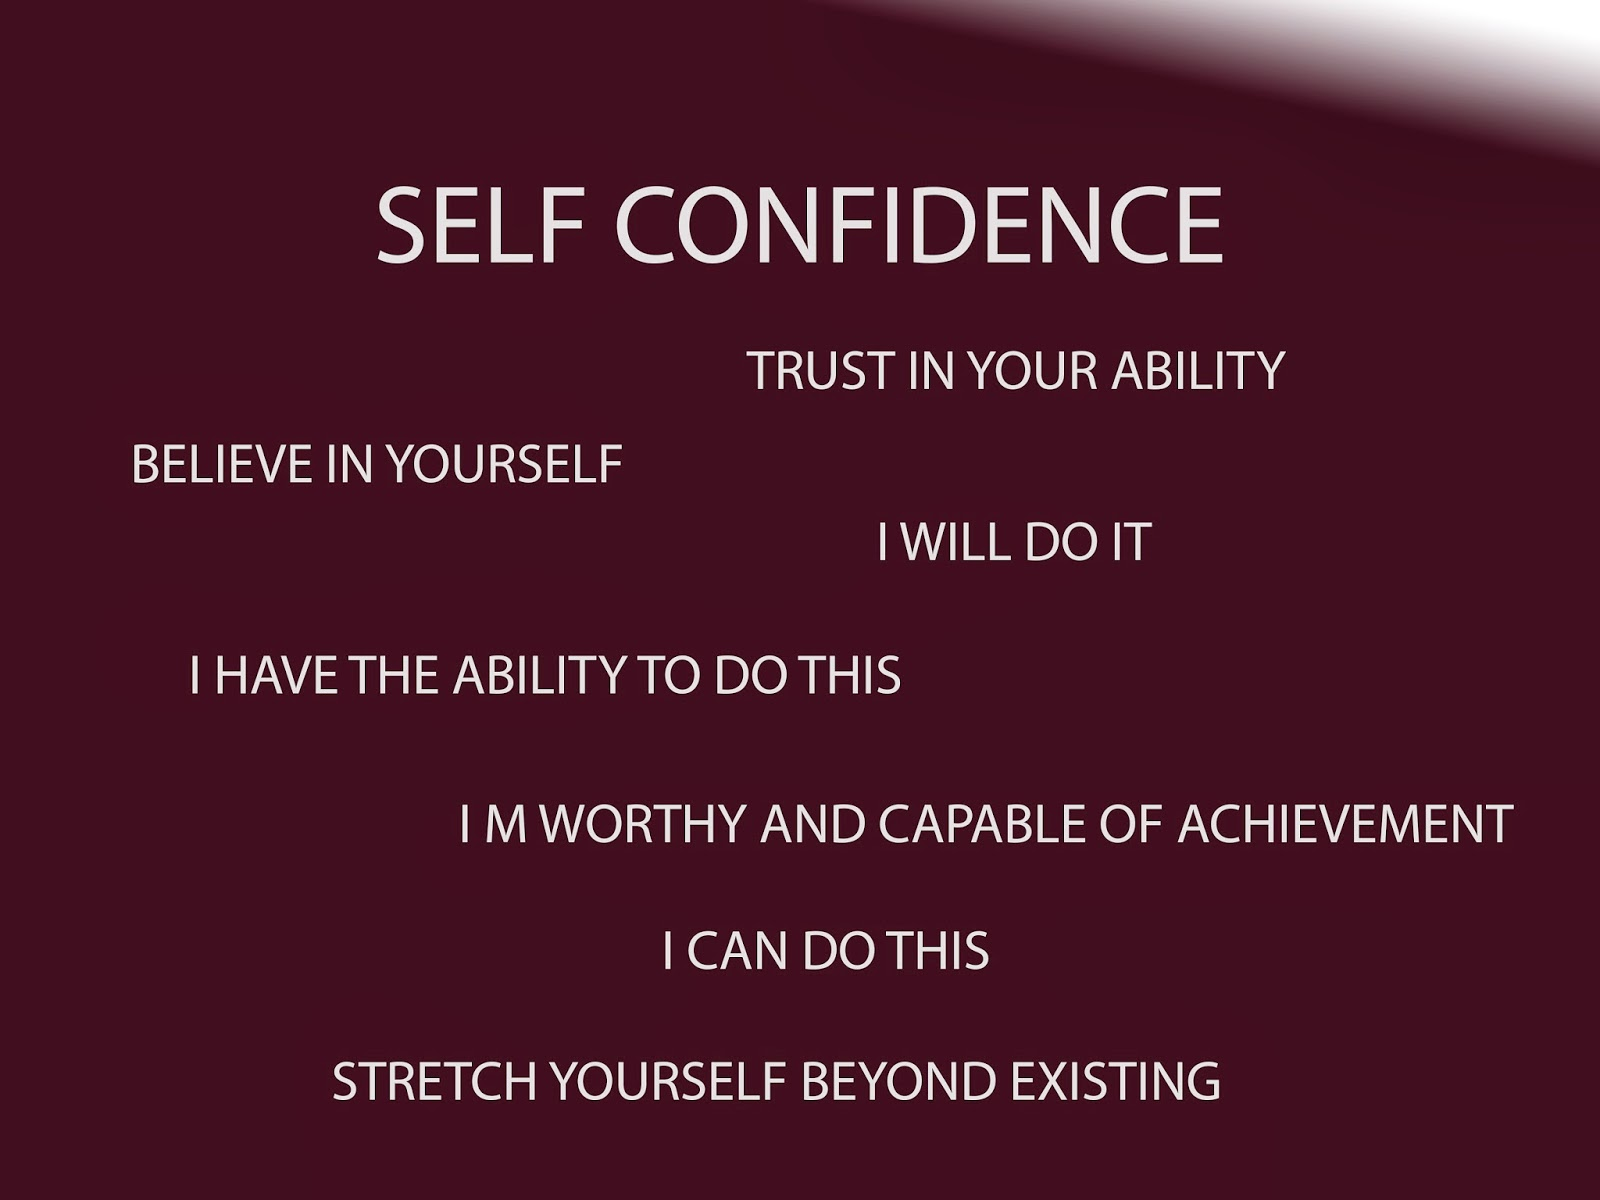 Essay about self confidence